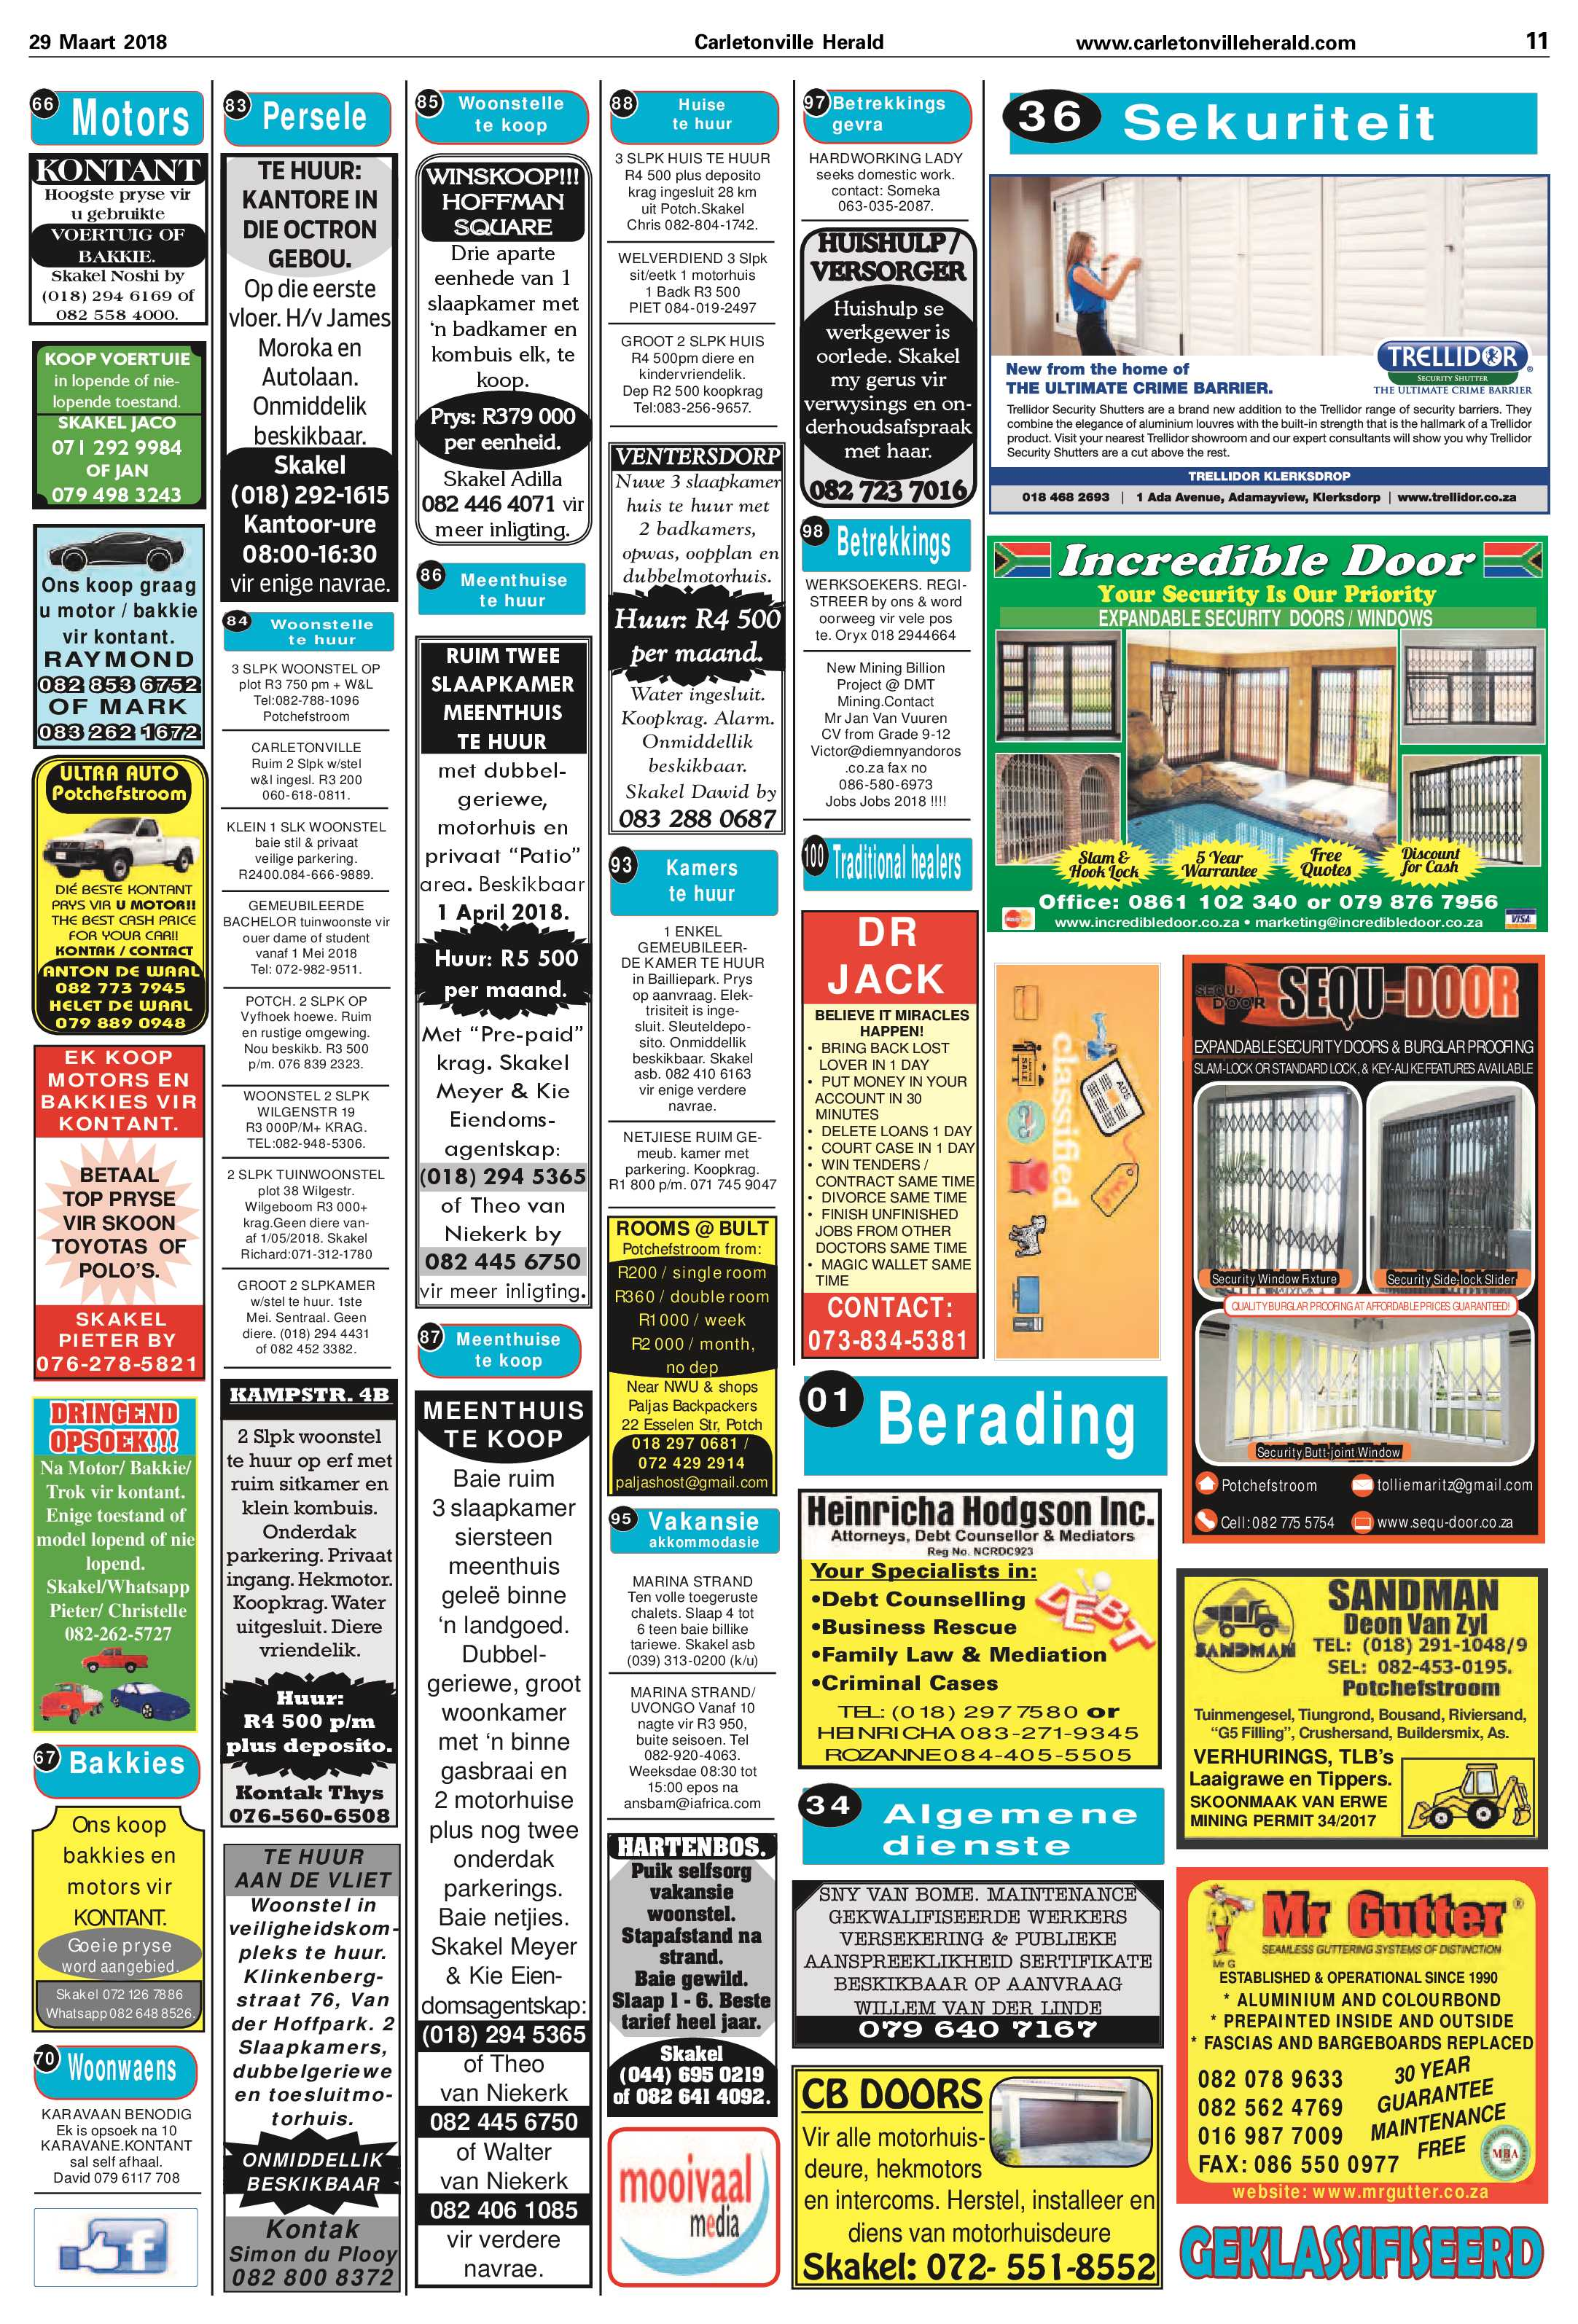 29-march-2018-epapers-page-11